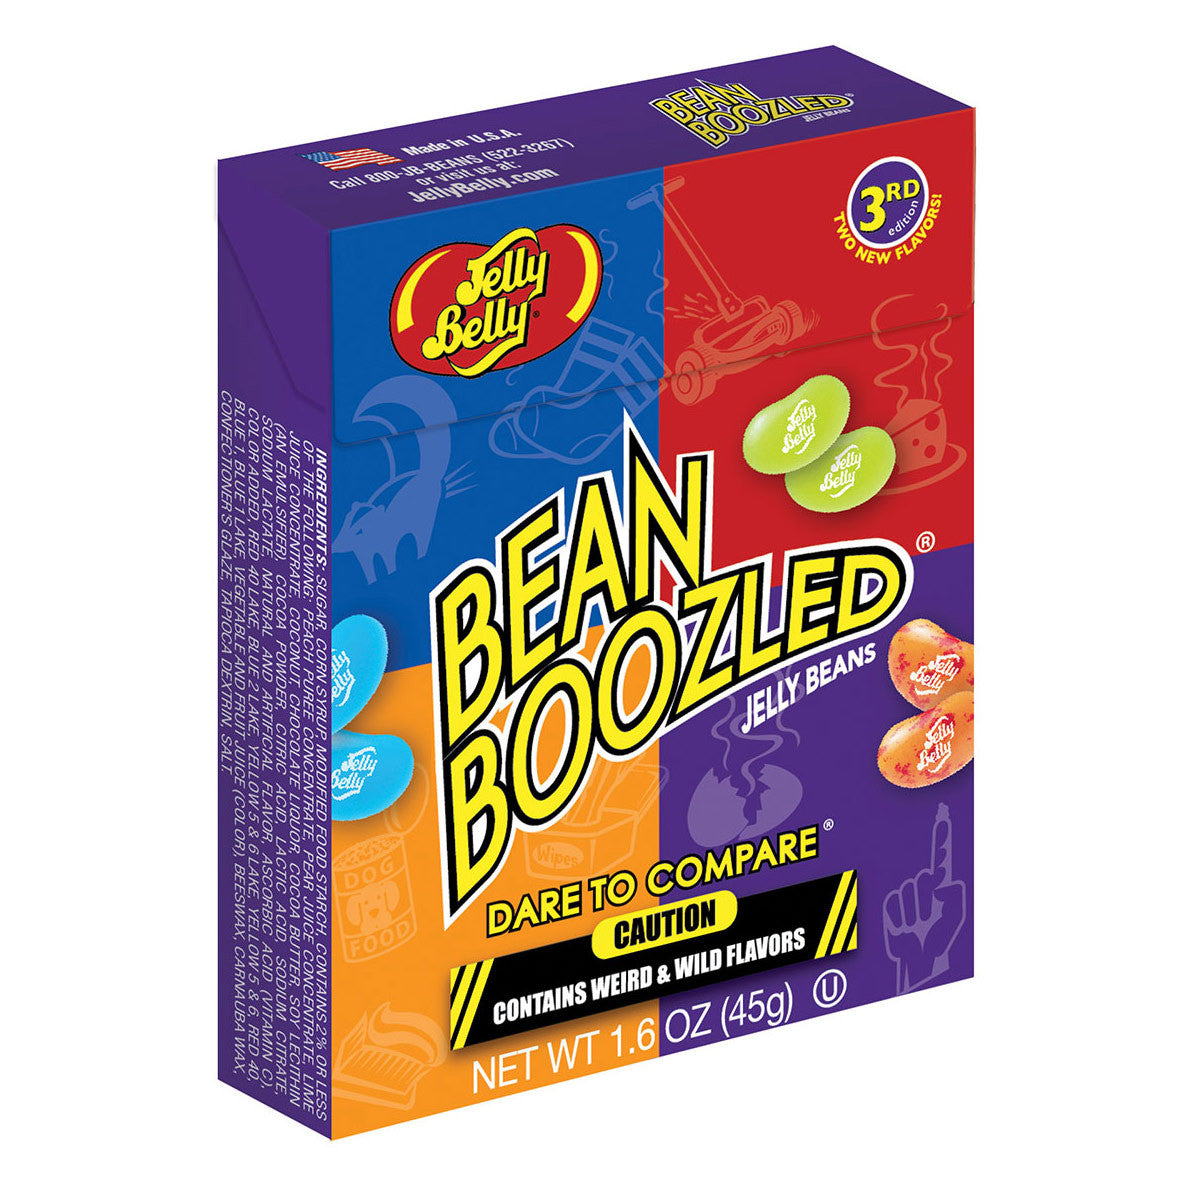 Jelly Belly Bean Boozled. - Toybox Toy Jungle